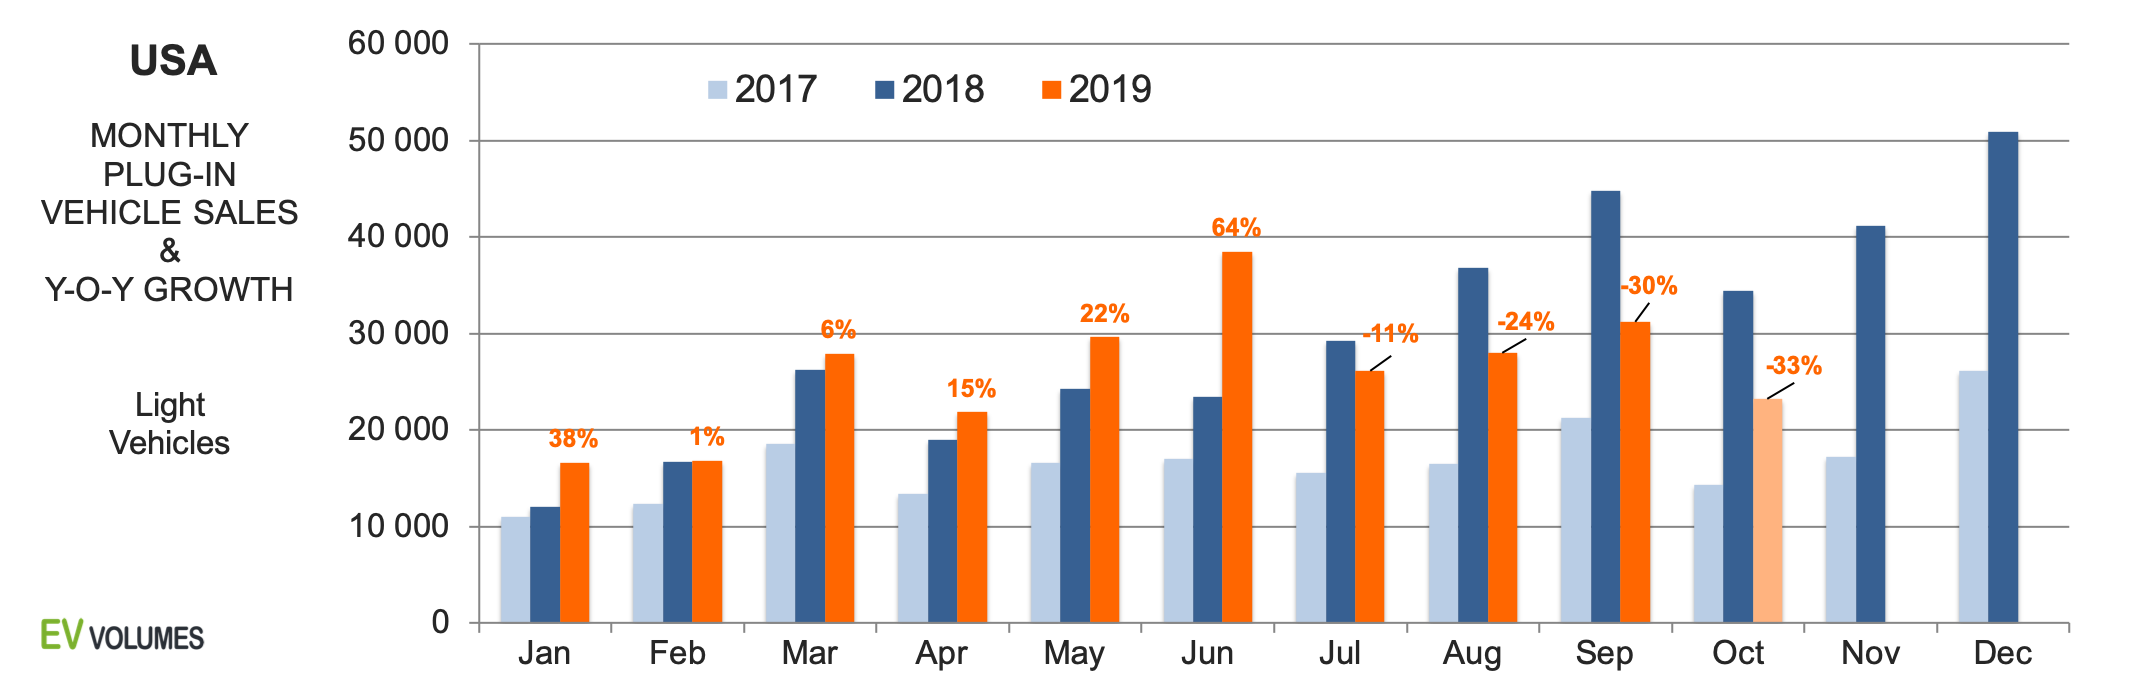 first USA Plug-in Sales for 2019 YTD October image